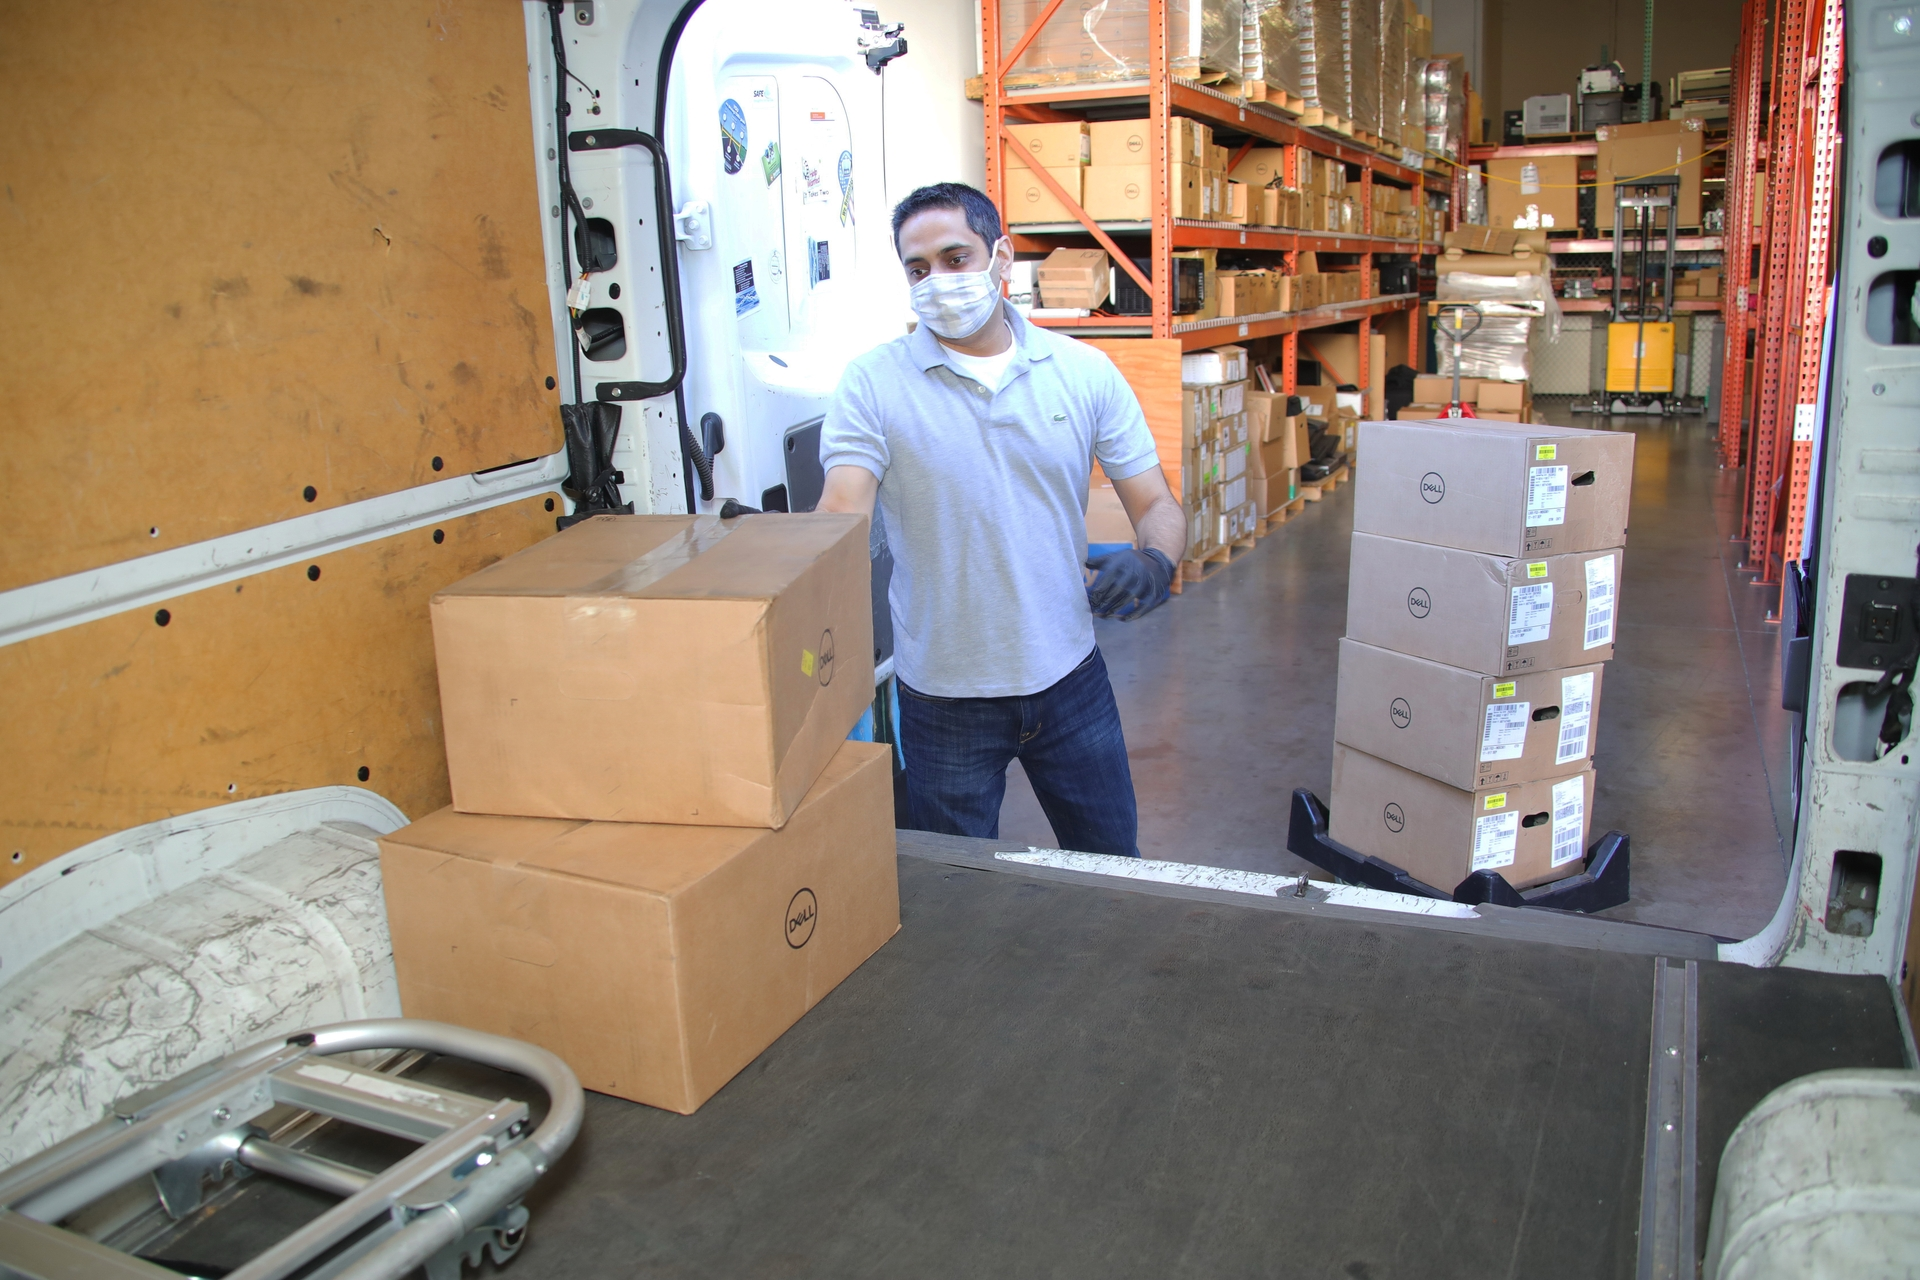 Sanjay Nangia, SCE principal manager in IT Operations, loads boxes of refurbished laptops for donation onto a truck.